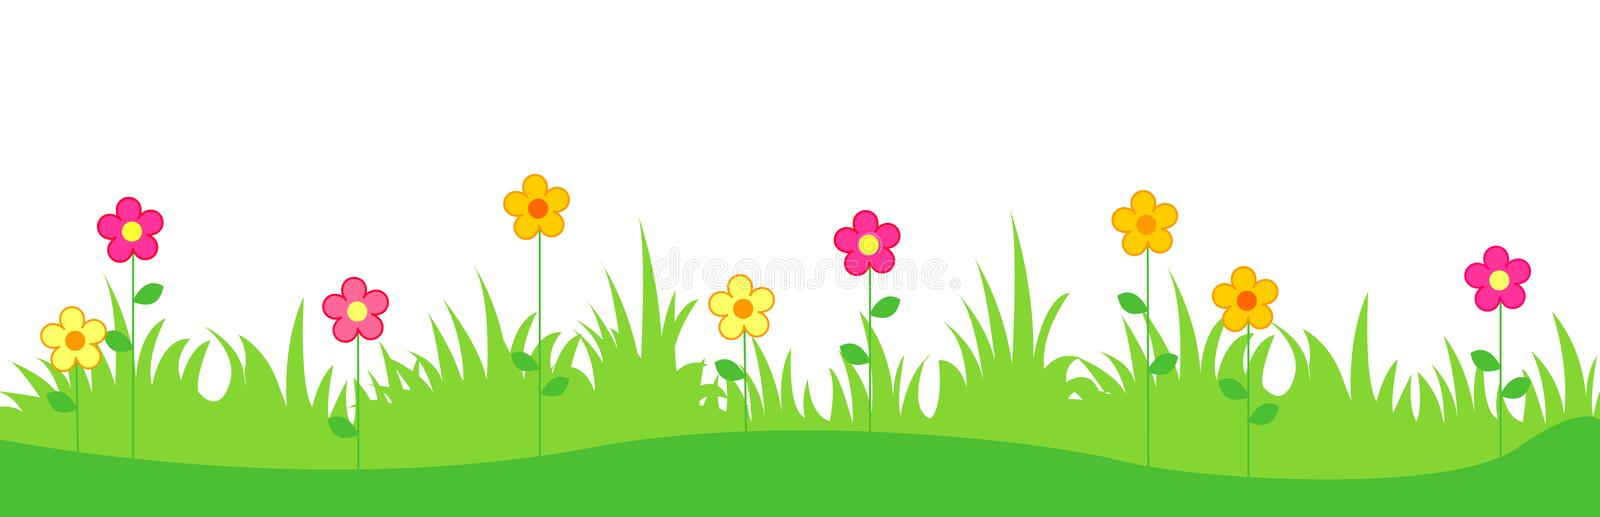 Spring flowers and grass stock illustration